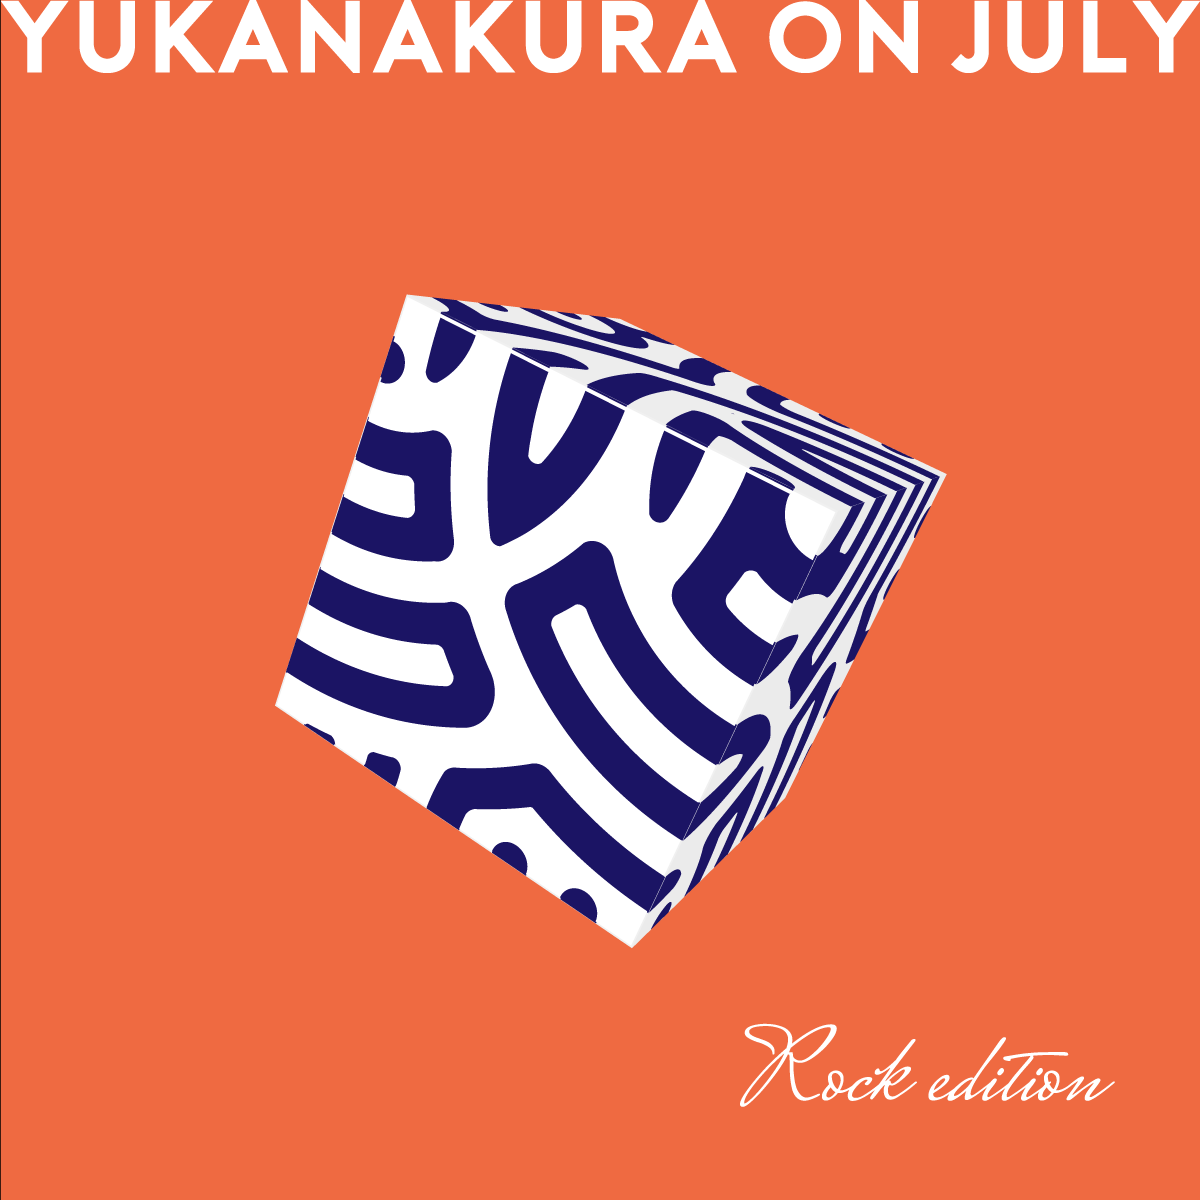 yukanakura_on_july_rock